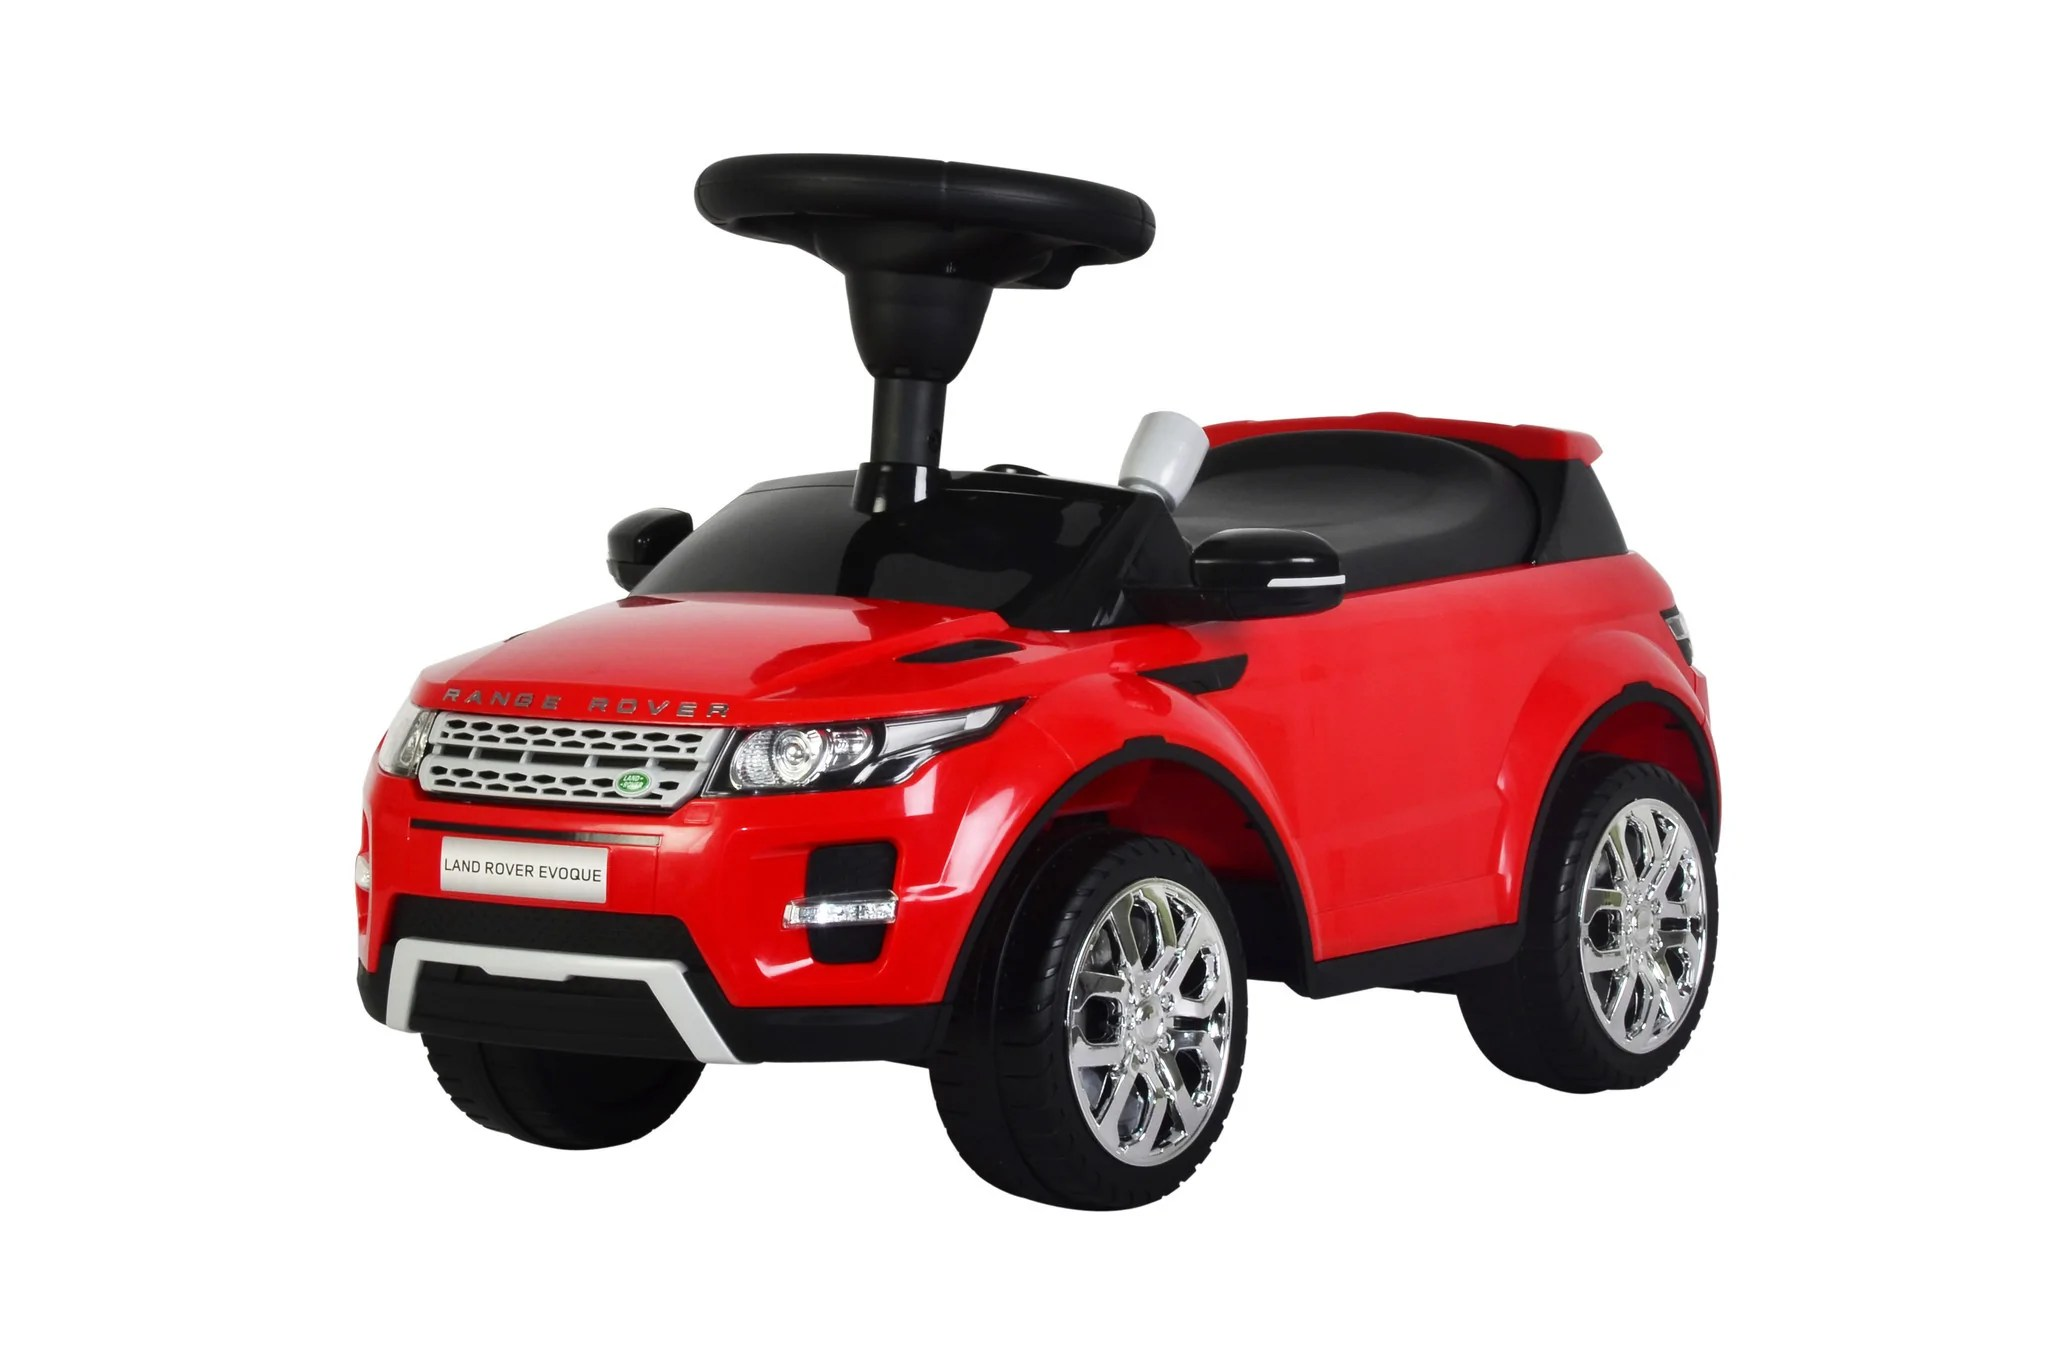 Range Rover Evoque Licensed Manual Ride Model 348 WHITE